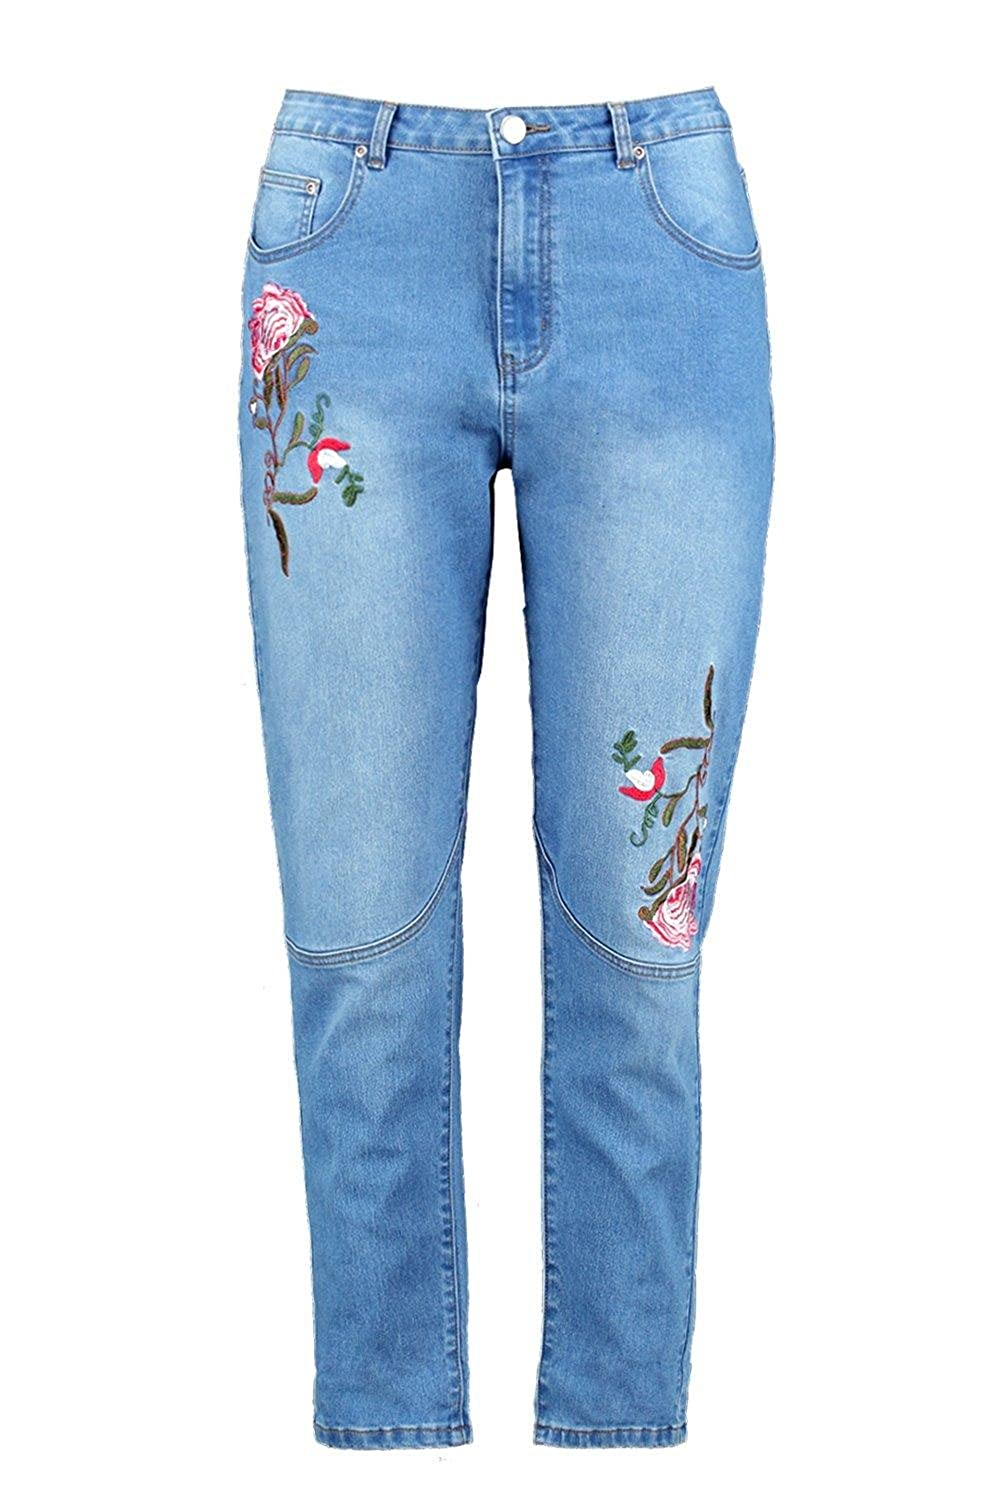 03e4c5ff8b1 Boohoo Womens Plus Size Orla Embroidered Skinny Jean well-wreapped ...